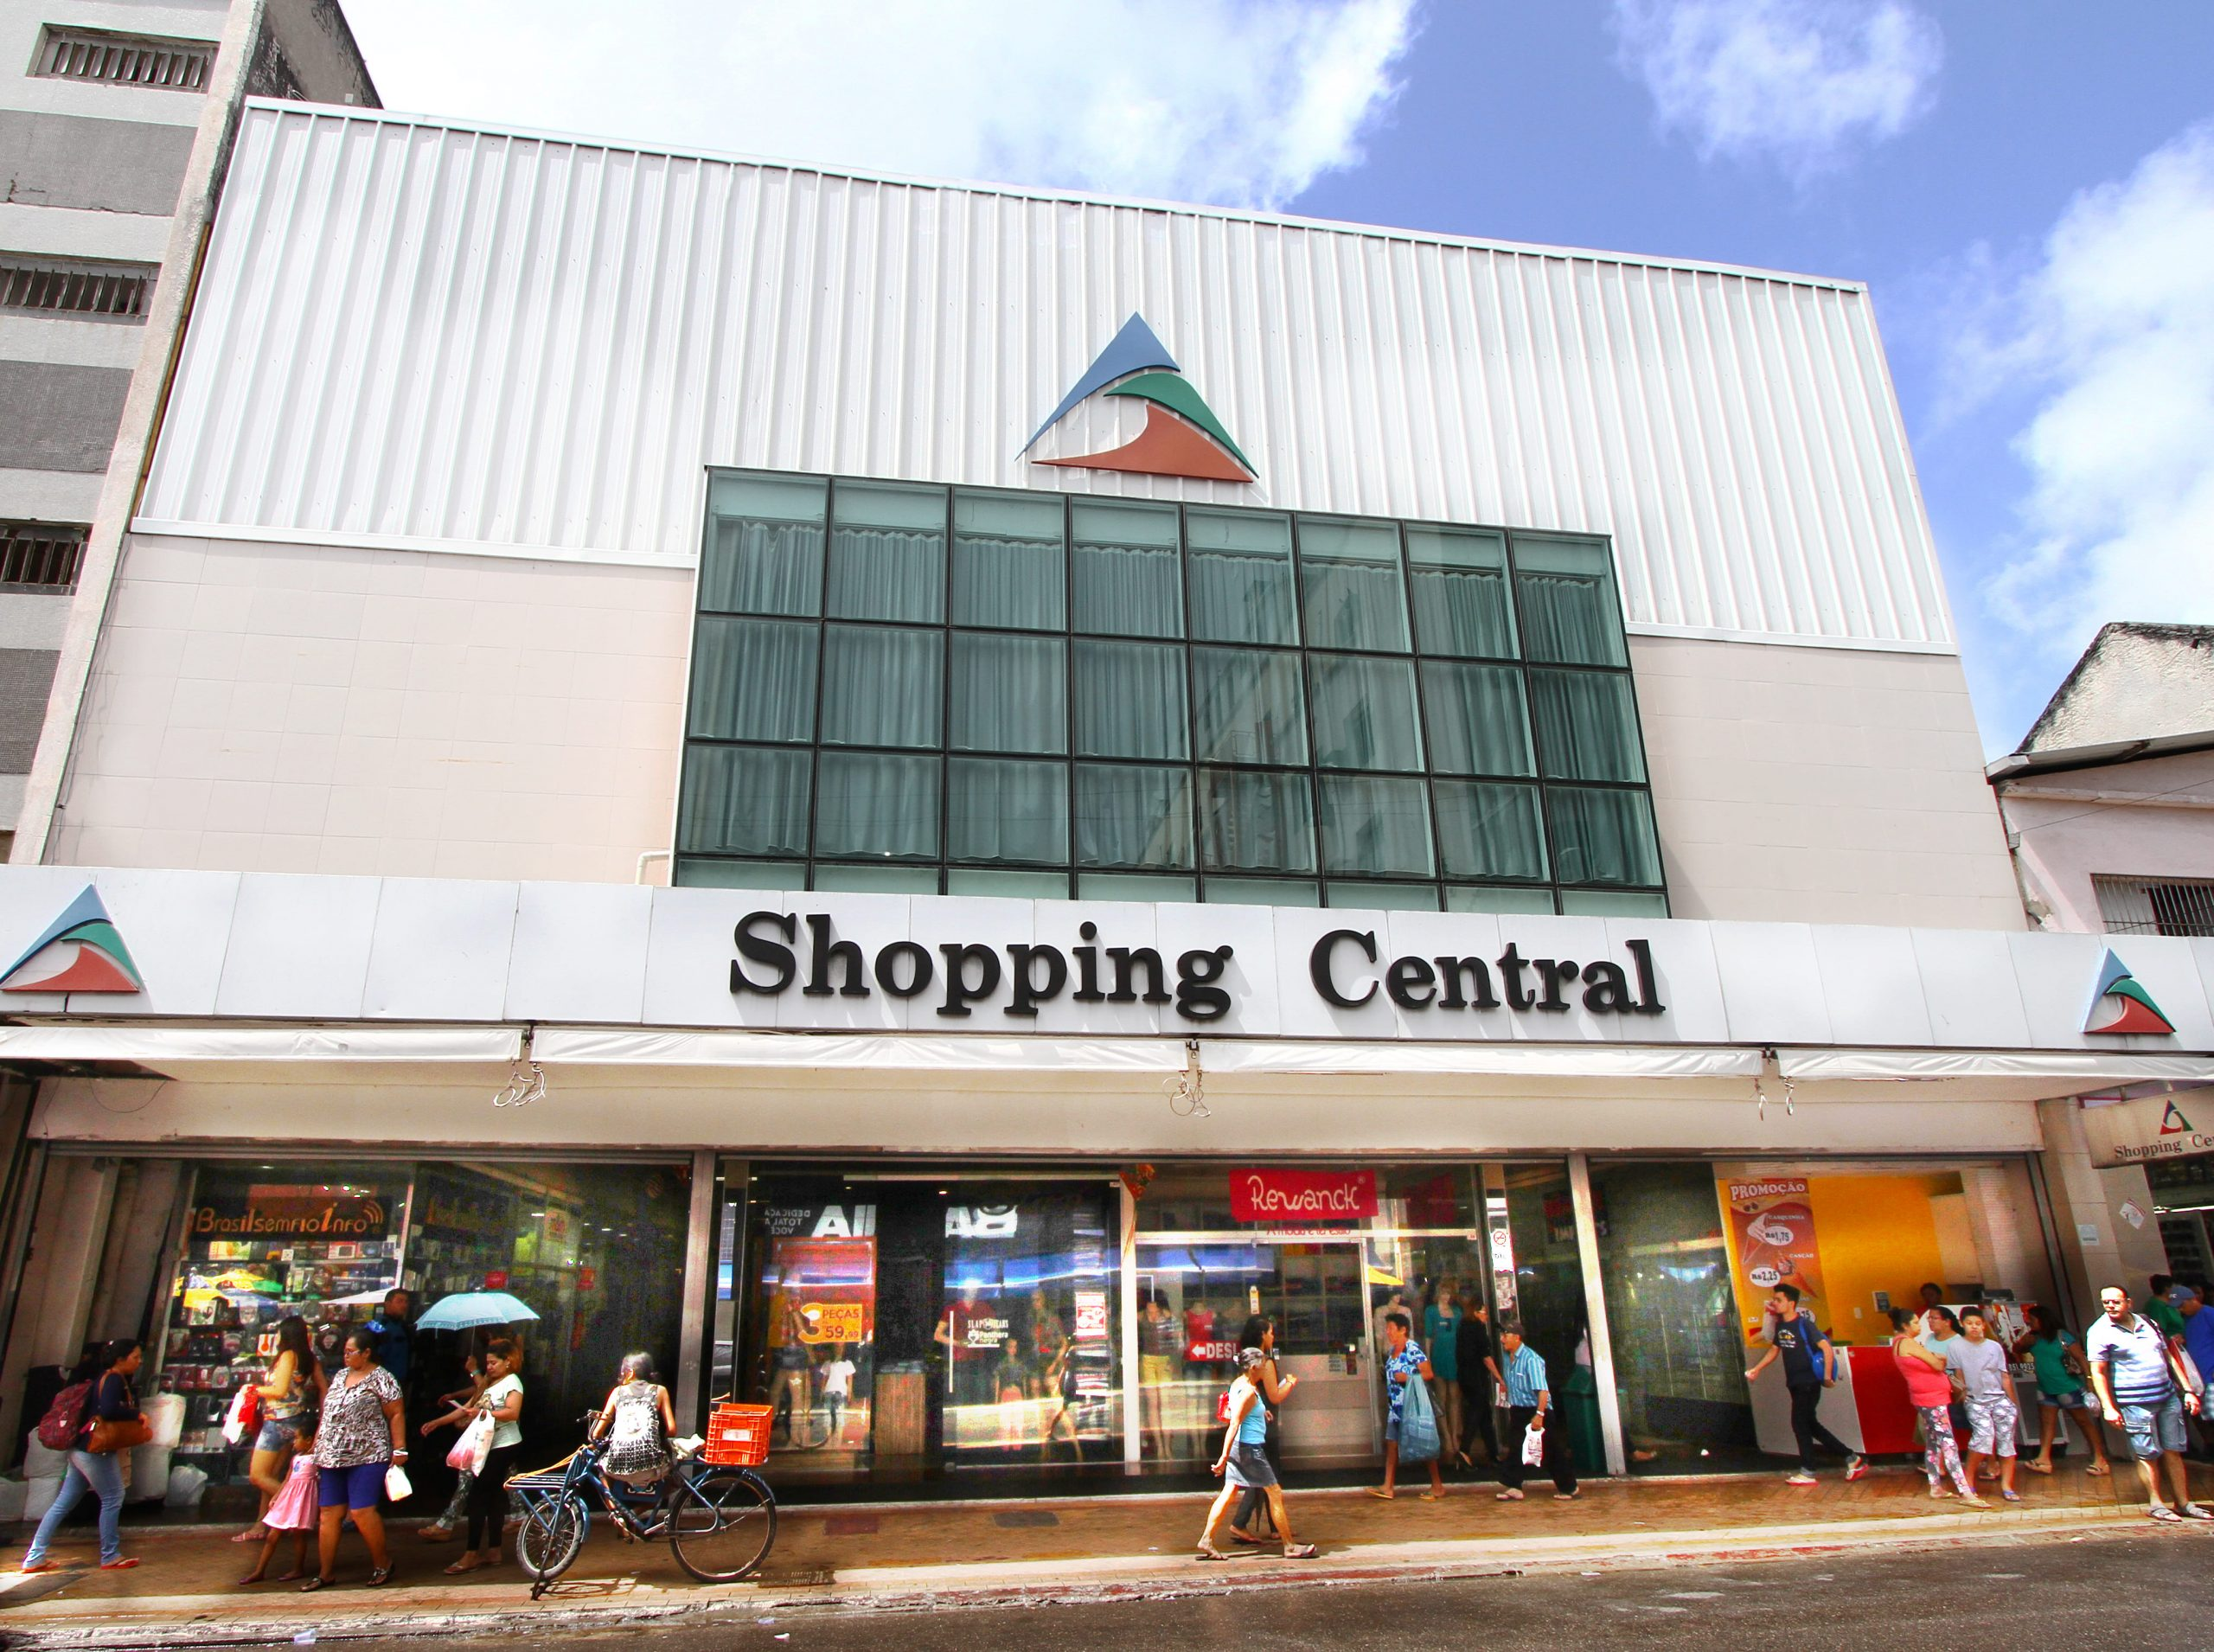 SHOPPING CENTRAL